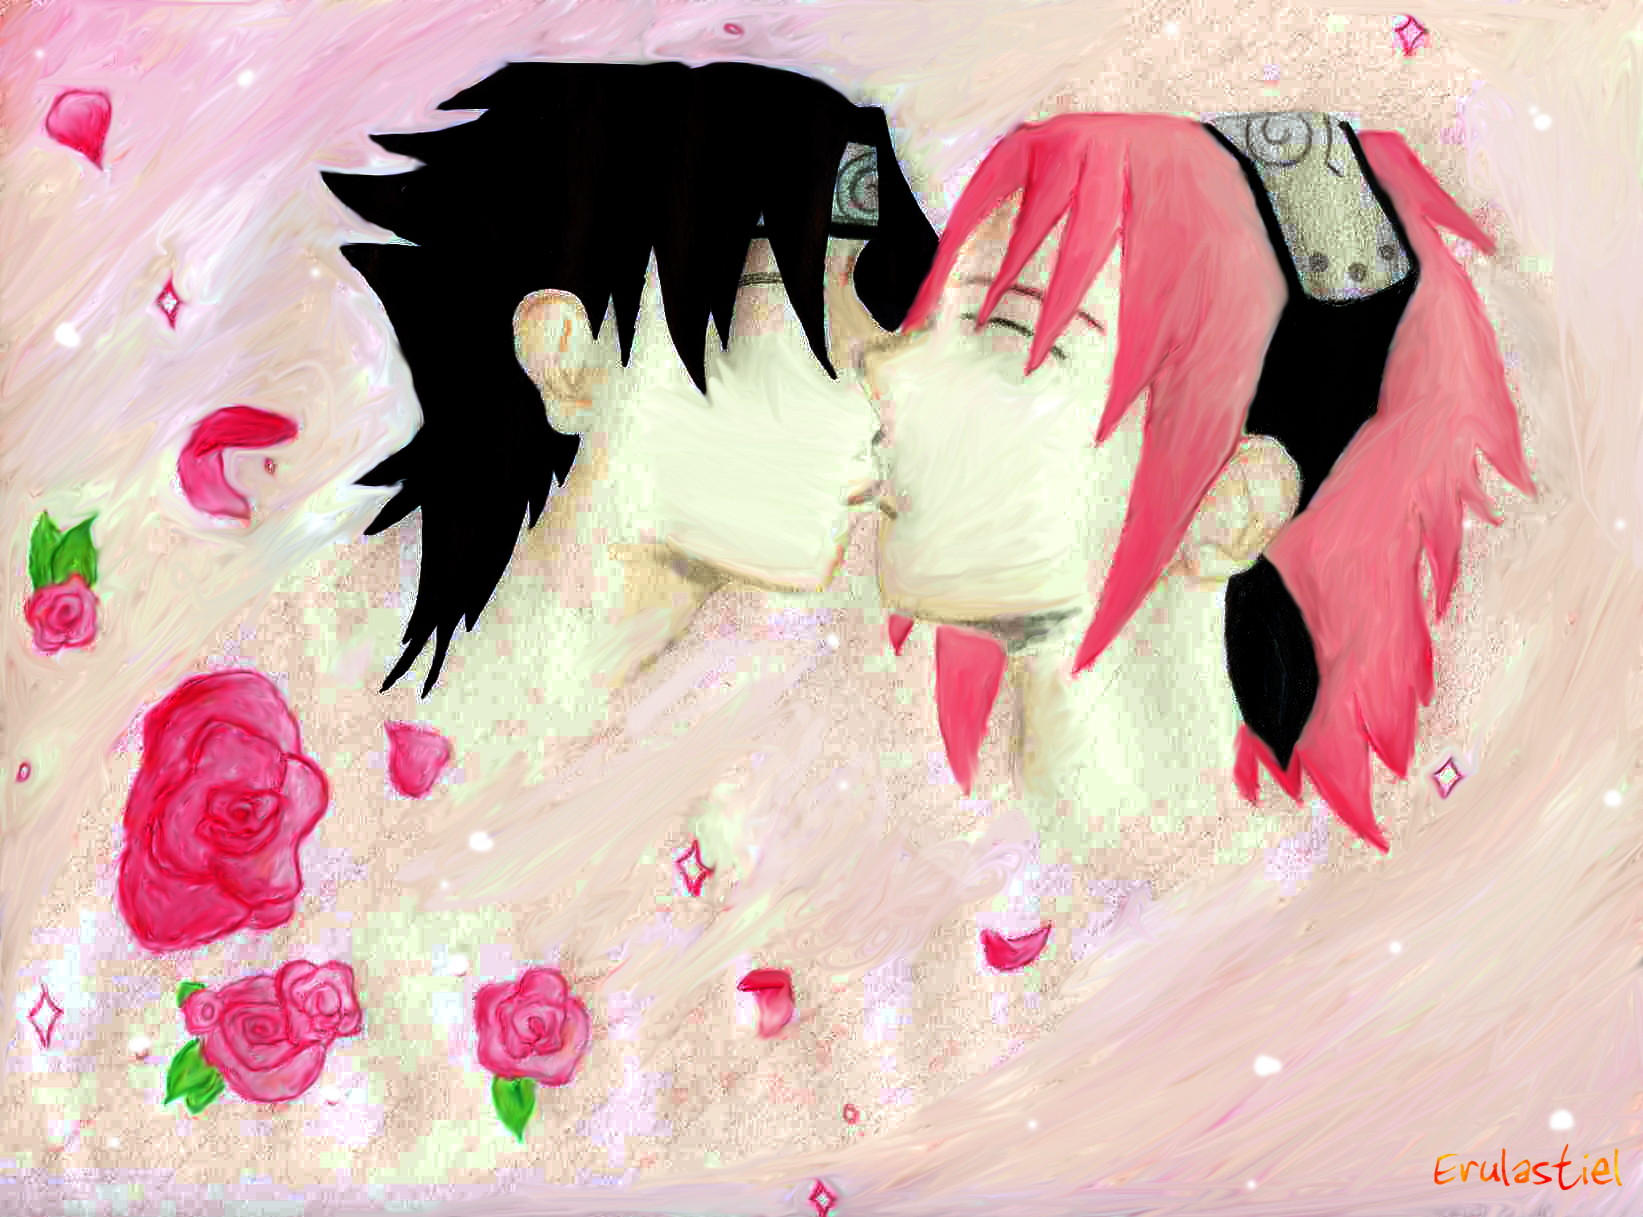 SasuSaku-First Kiss by Erulastiel